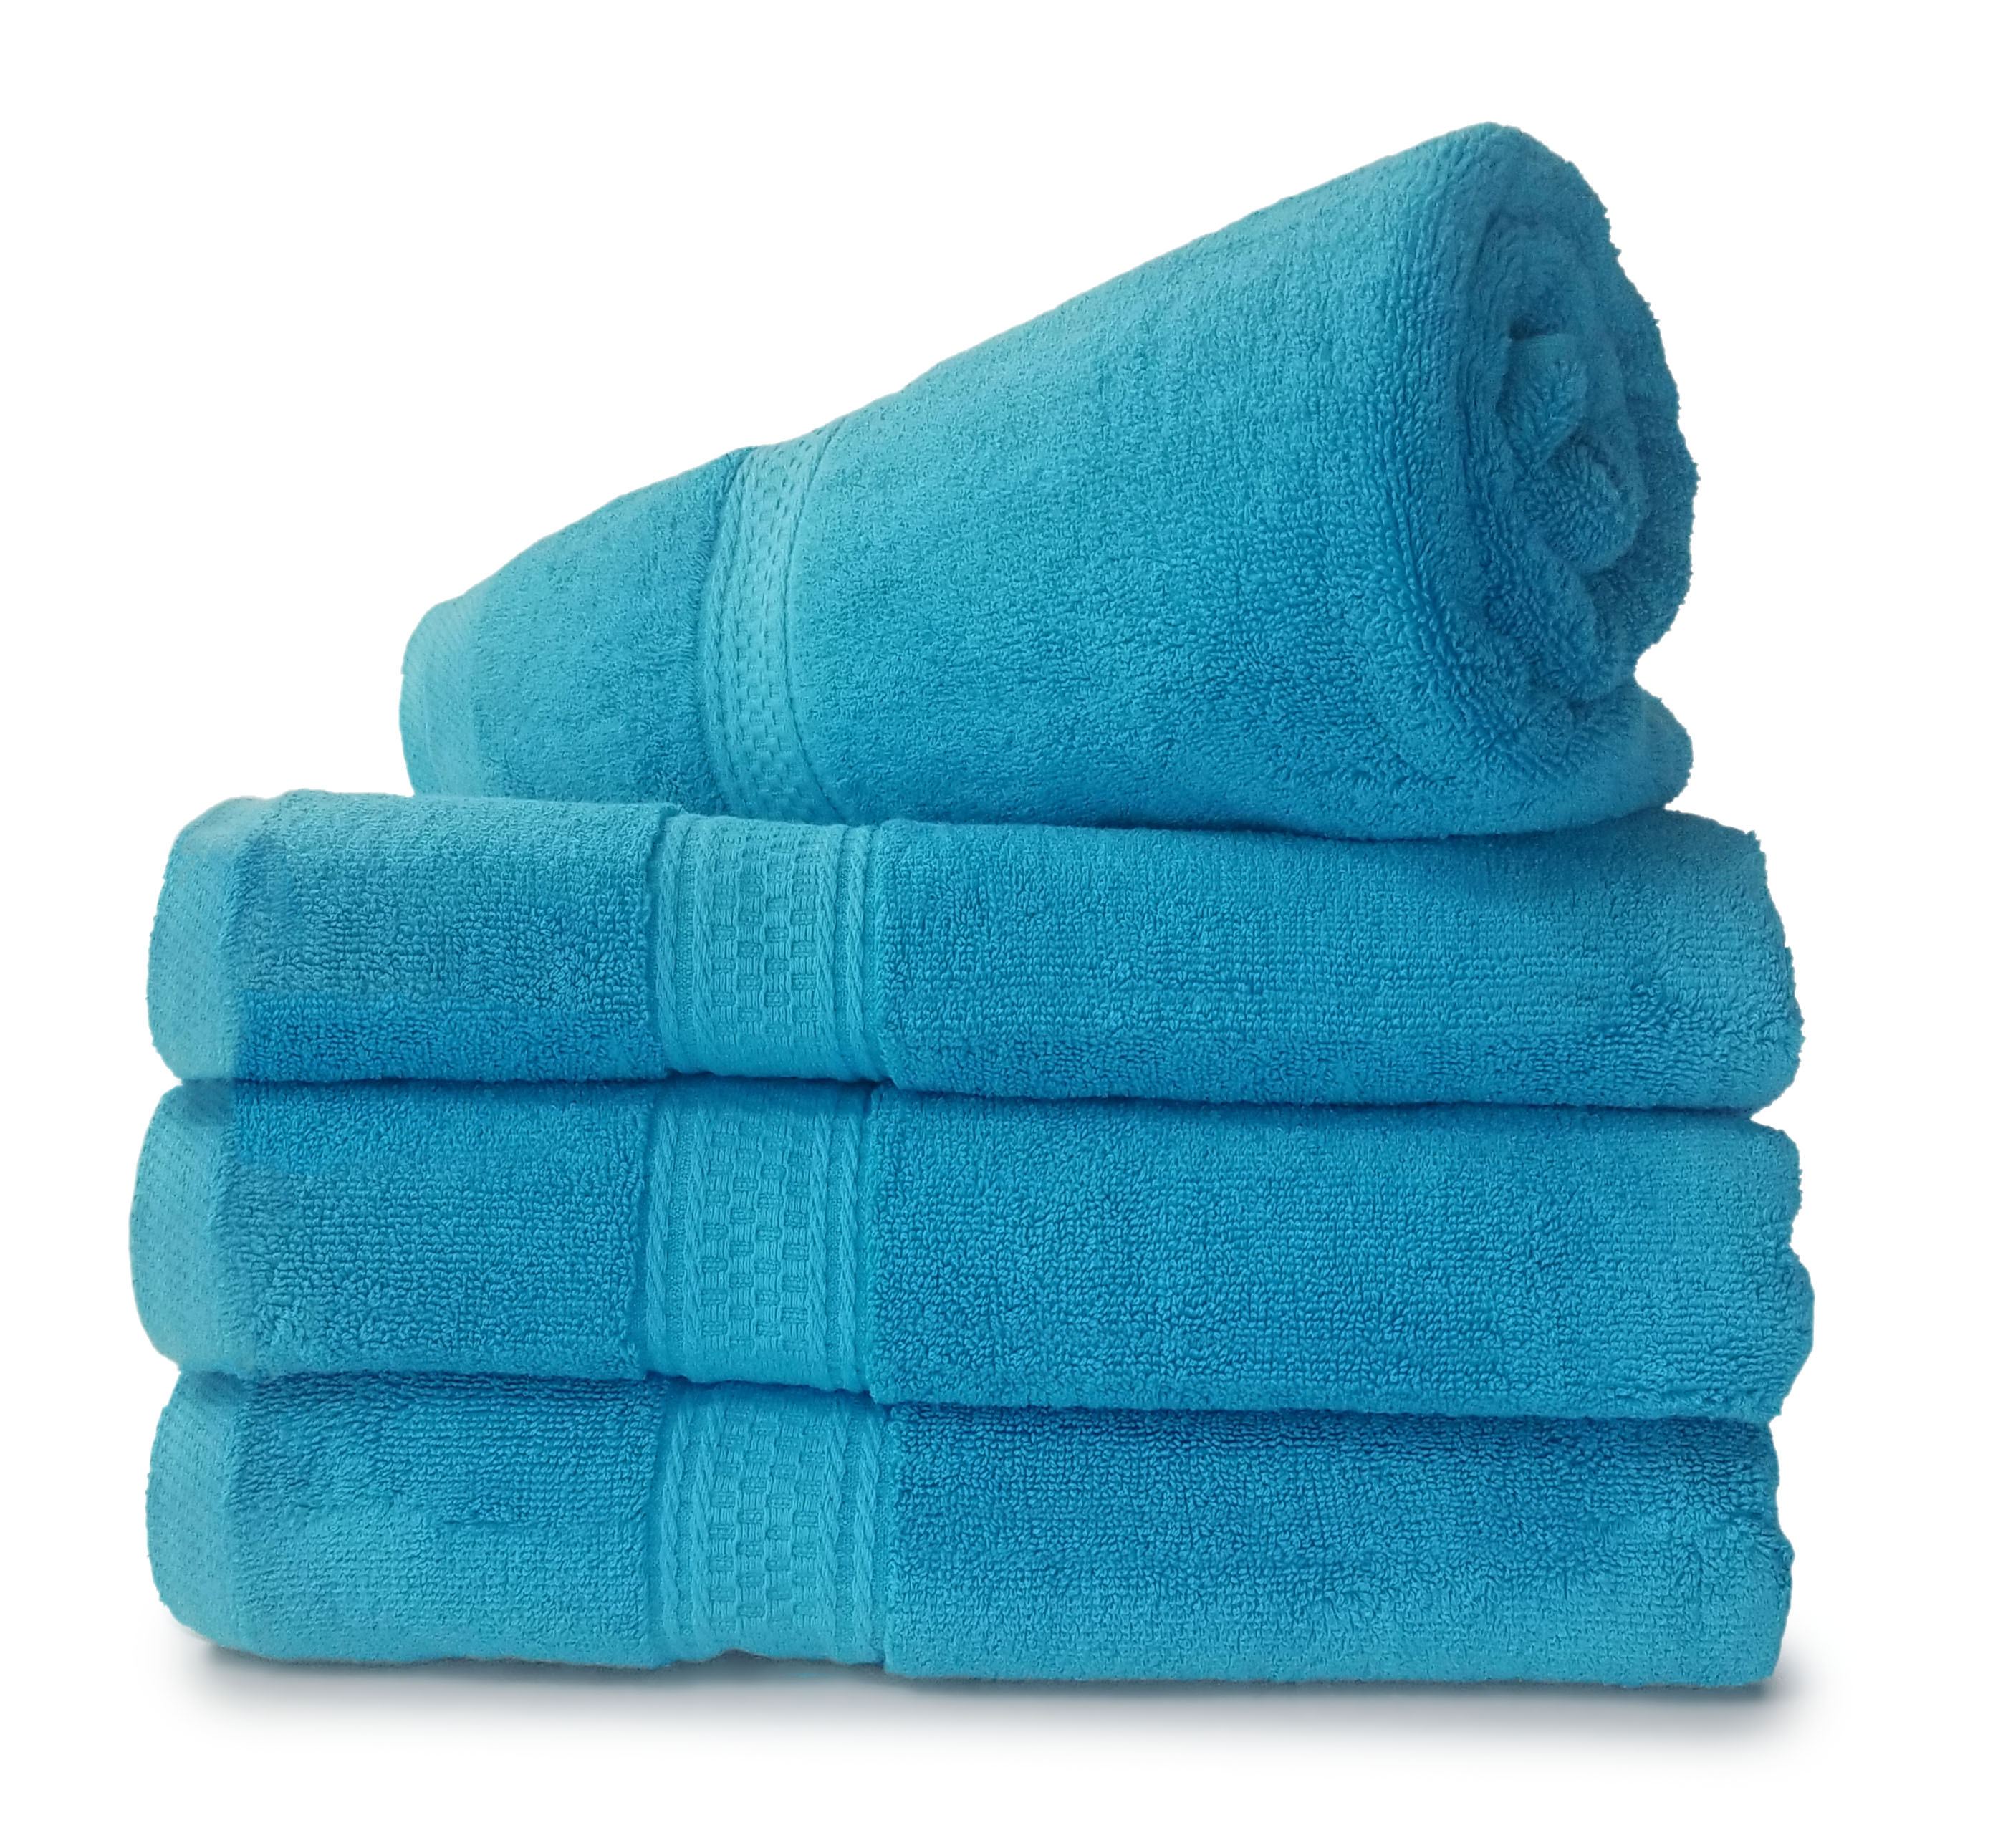 4 PC Set SHIPPING INCLUDED  27x54 Bath Towels by Royal Comfort Woven   RING SPUN COTTON  17.5 Lbs